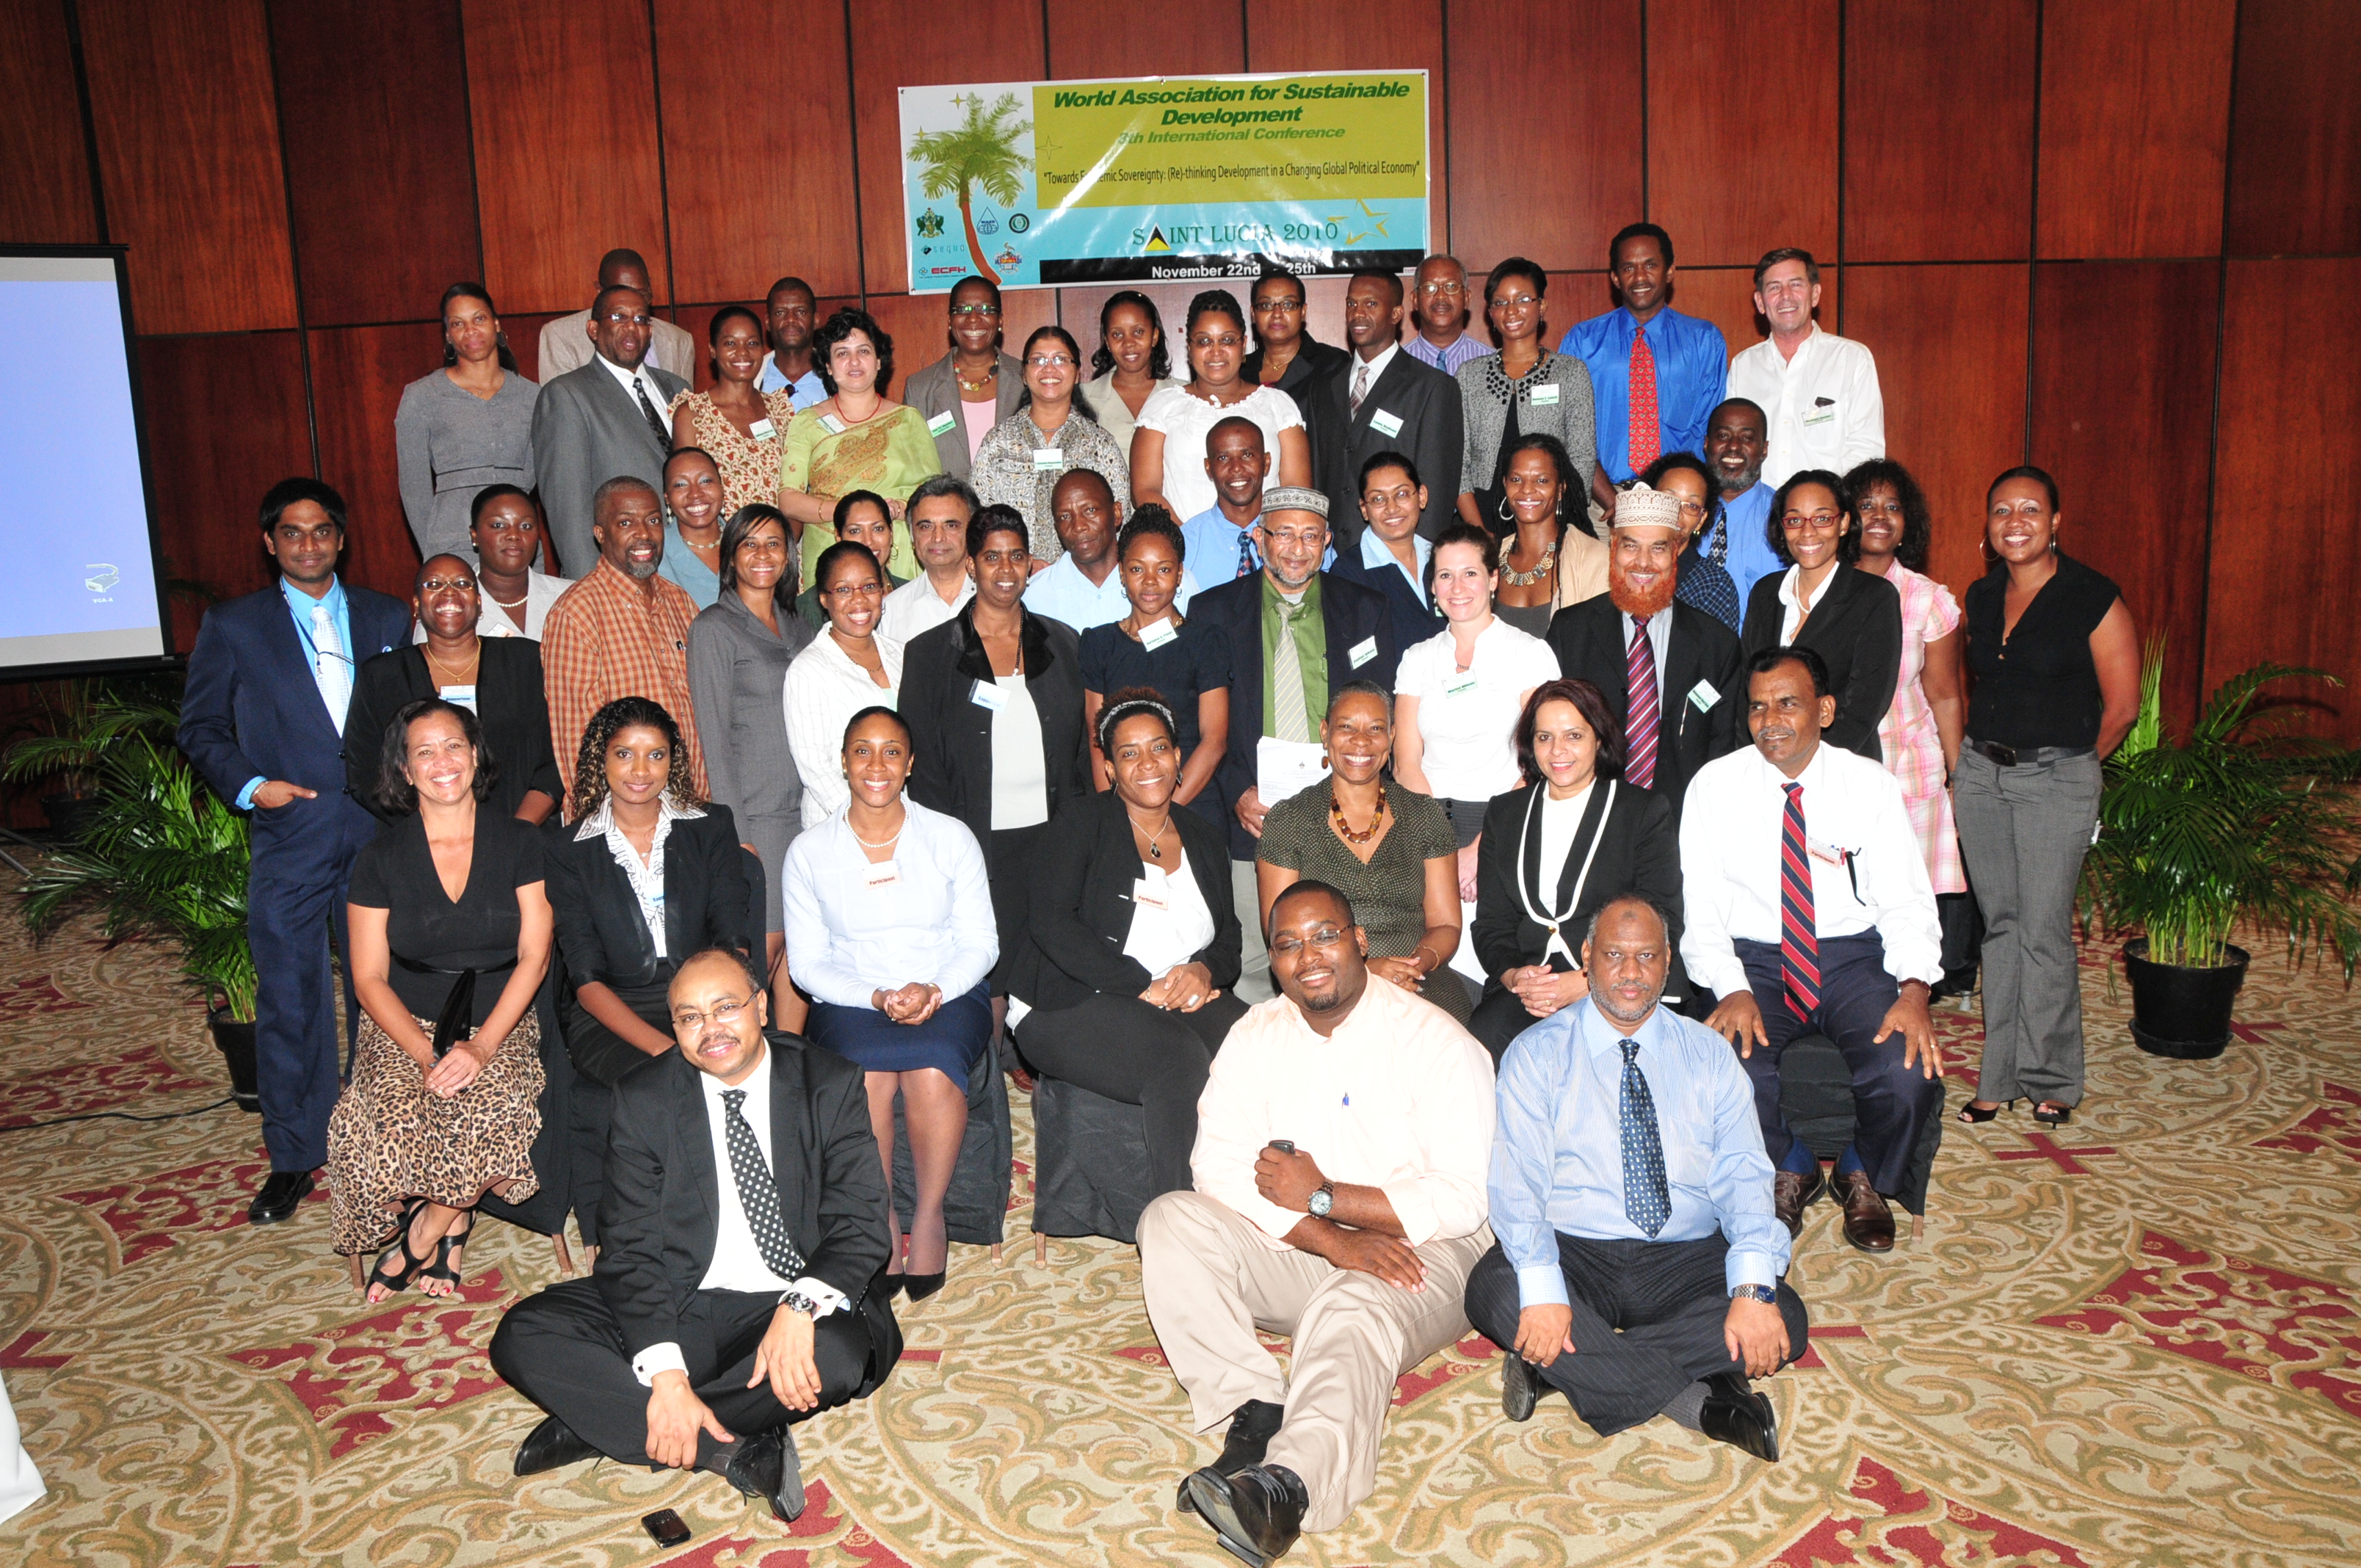 8th Sustainability Conference, St Lucia, Caribbean 2010<div style='clear:both;width:100%;height:0px;'></div><span class='cat'>Sustainability Conferences</span>